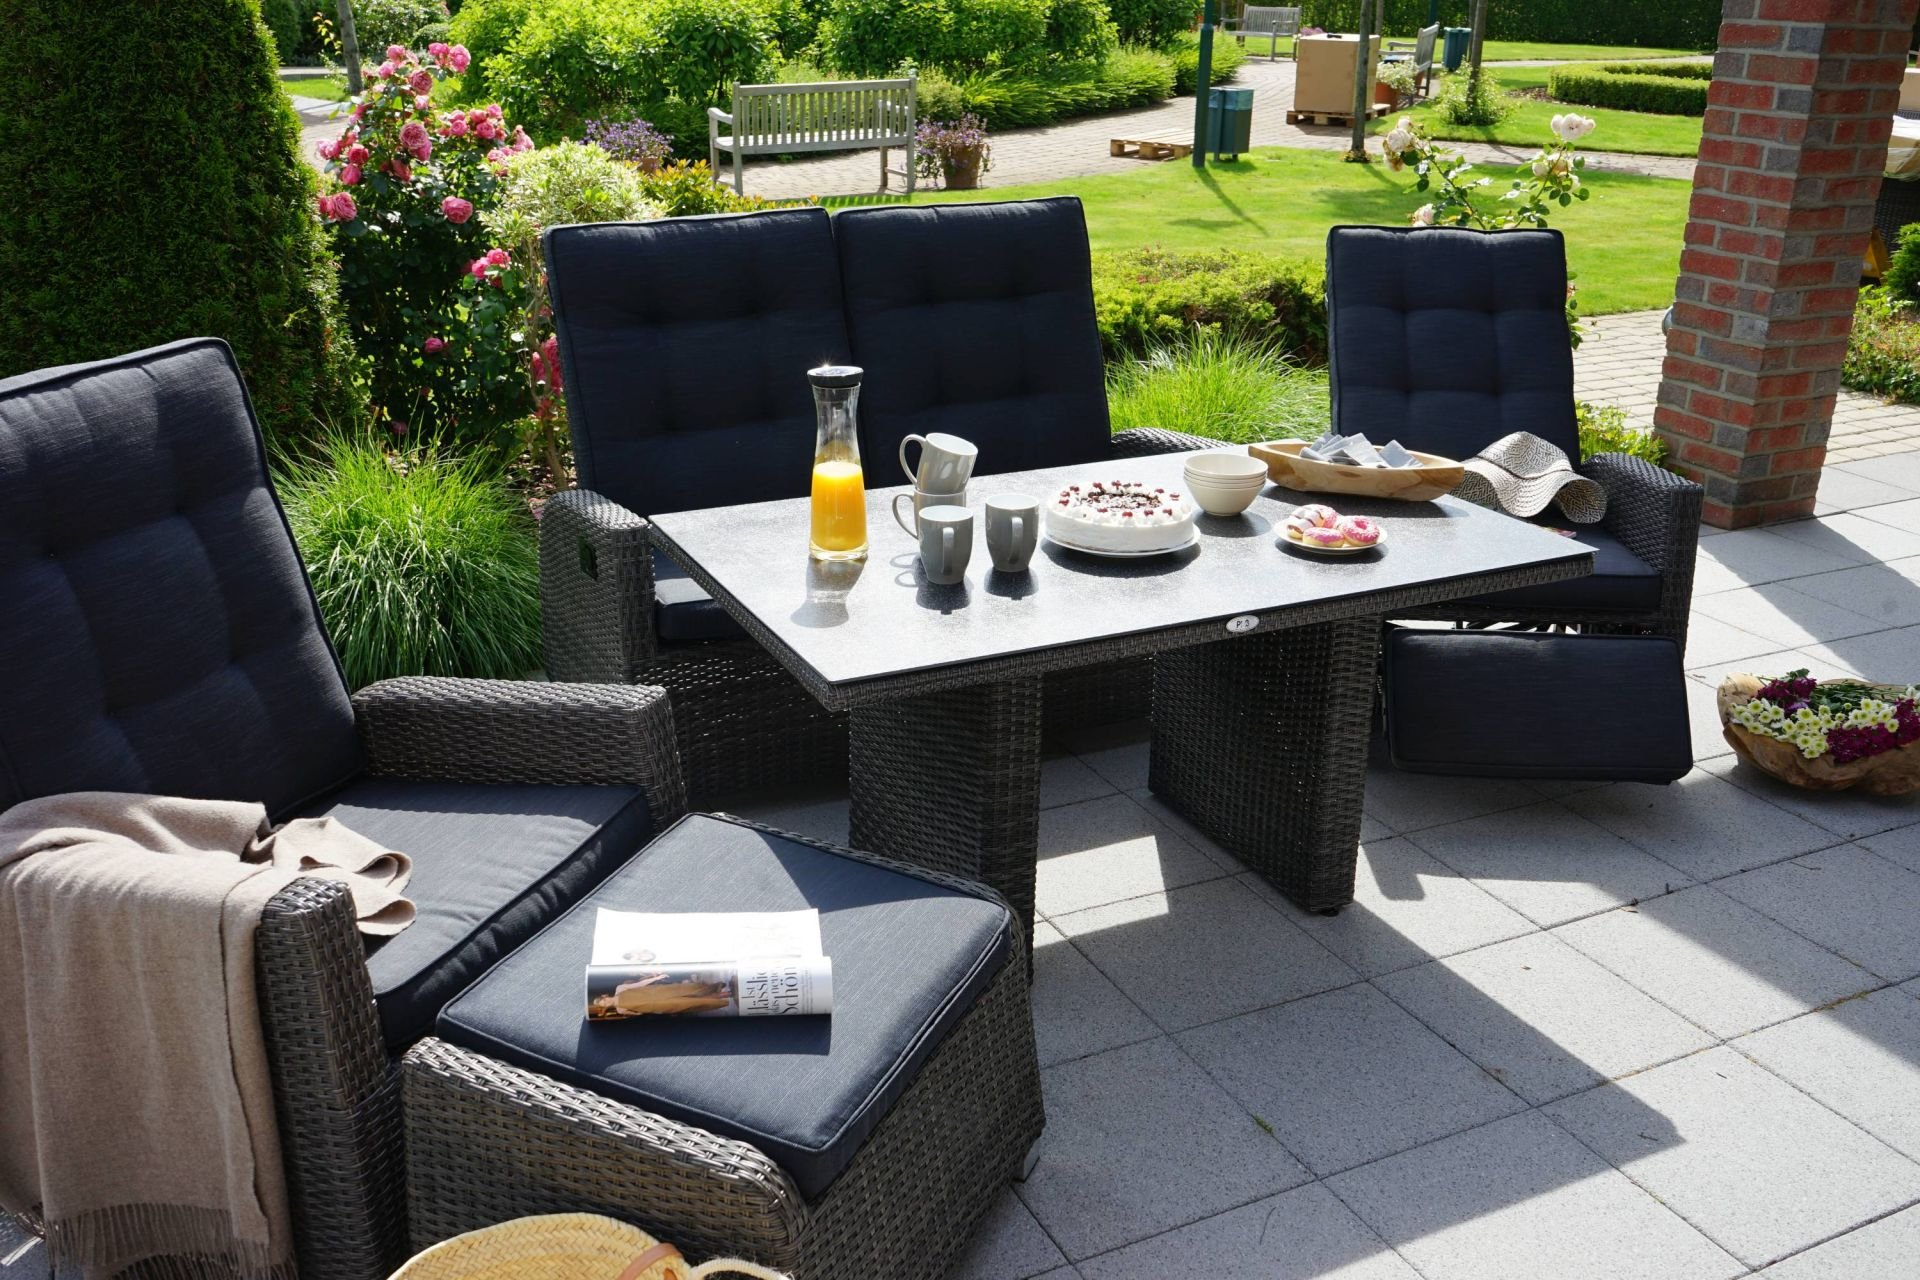 Wohndeko Online Buy Lounge Sets Online In The Outdoor Living Shop